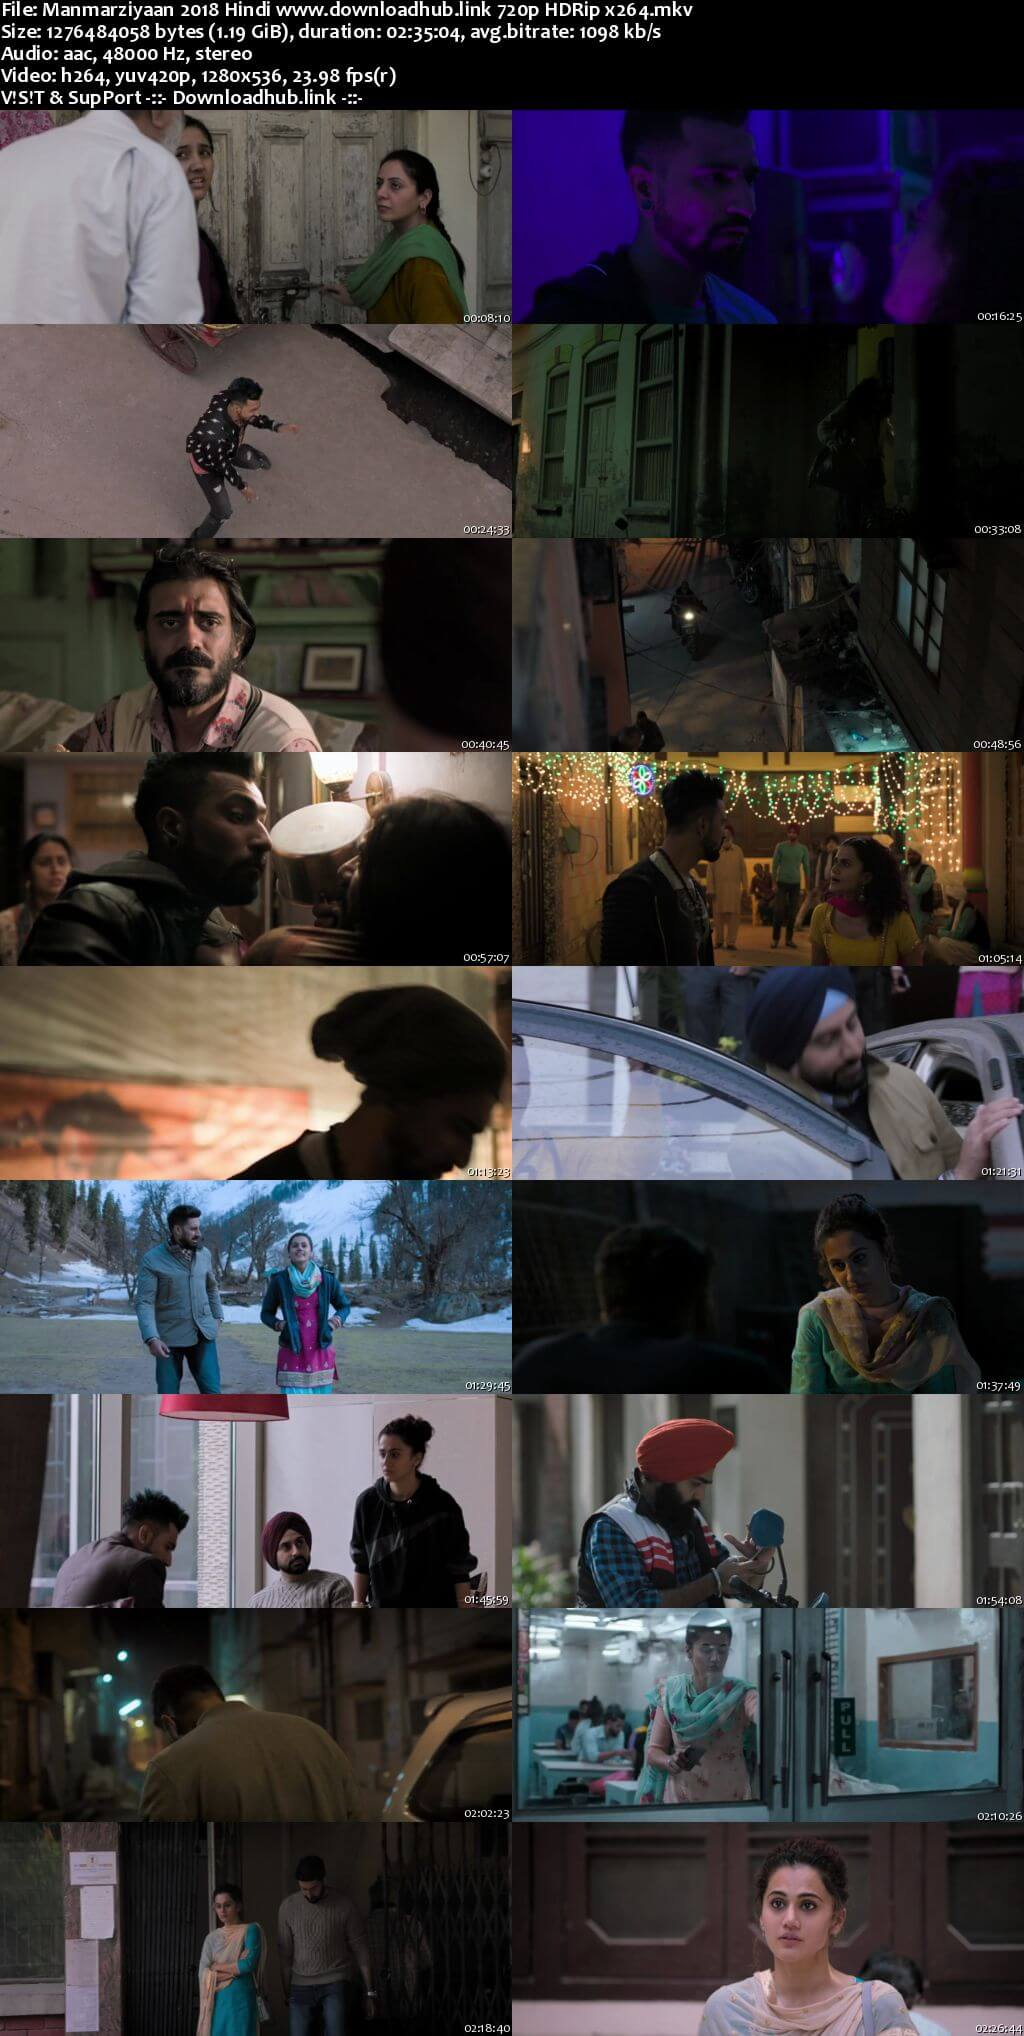 Manmarziyaan 2018 Hindi 720p HDRip x264